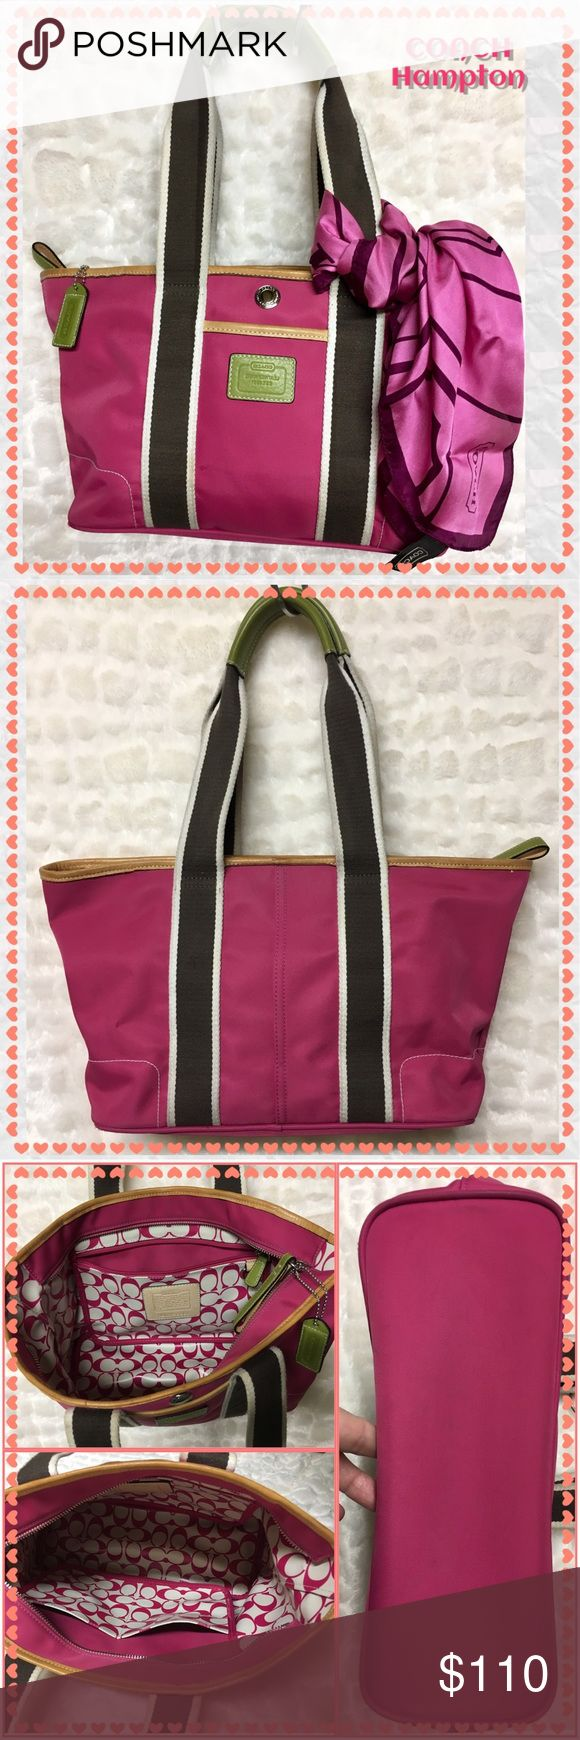 "🆕COACH Hampton canvas Weekend Tote-LK3-6261 COACH Hampton canvas Weekend Tote-LK3-6261 Pink with chocolate and lime green trim. 💯% Authentic in EUC More description in photos. This bag is in pristine condition! Comes with original dust-bag shown in photos. Bundle with pink scarf also sold in my closet for a discount. ""Reasonable"" offers welcome! Coach Bags Totes"